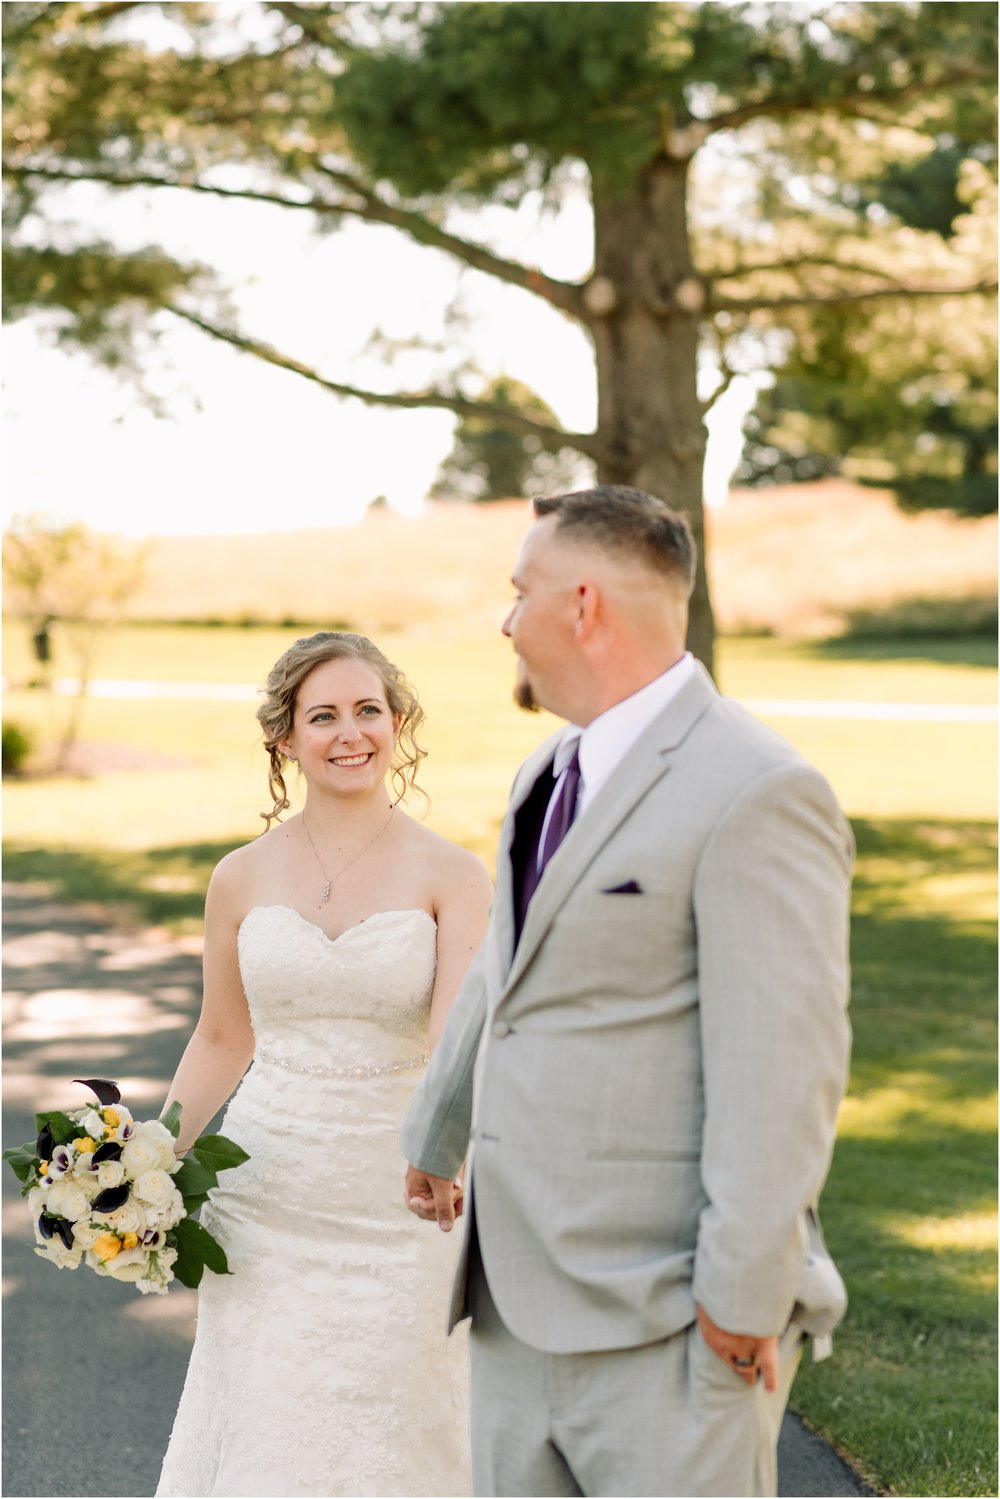 hannah leigh photography Piney Branch Golf Club Wedding Upperco MD_0463.jpg